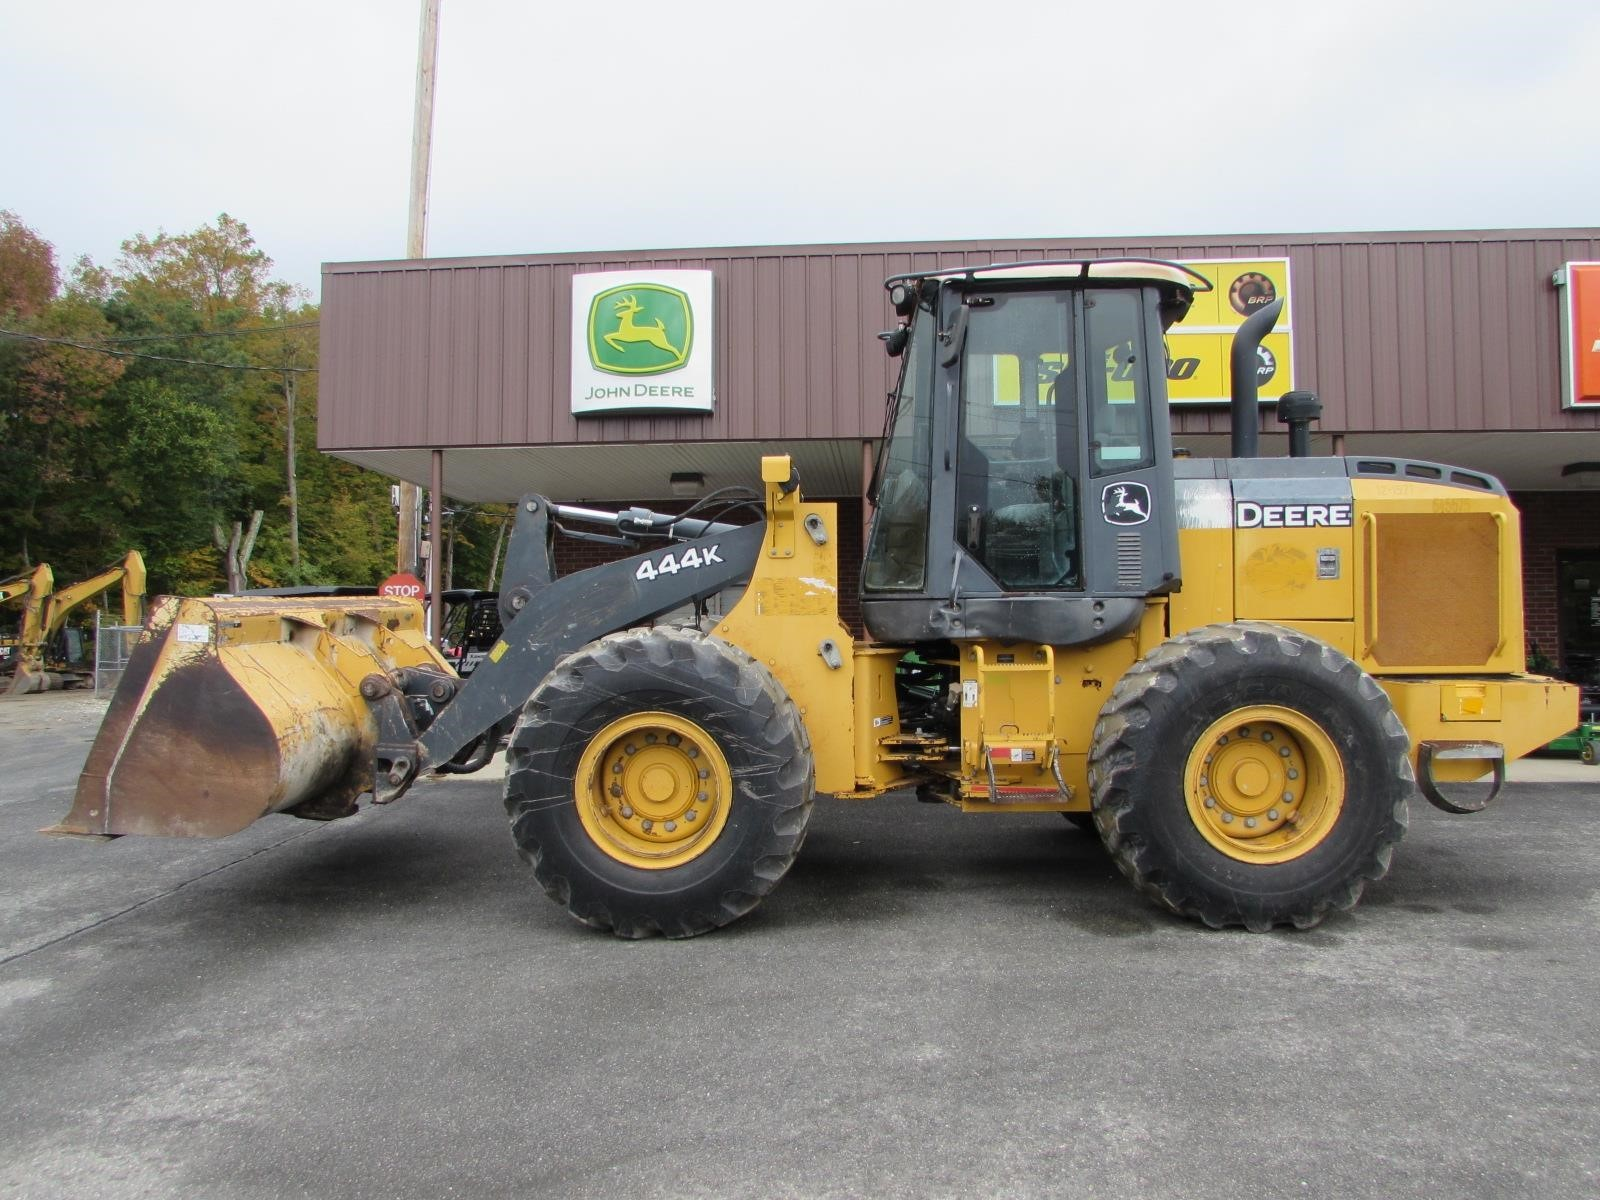 2012 Deere 444K Wheel Loader